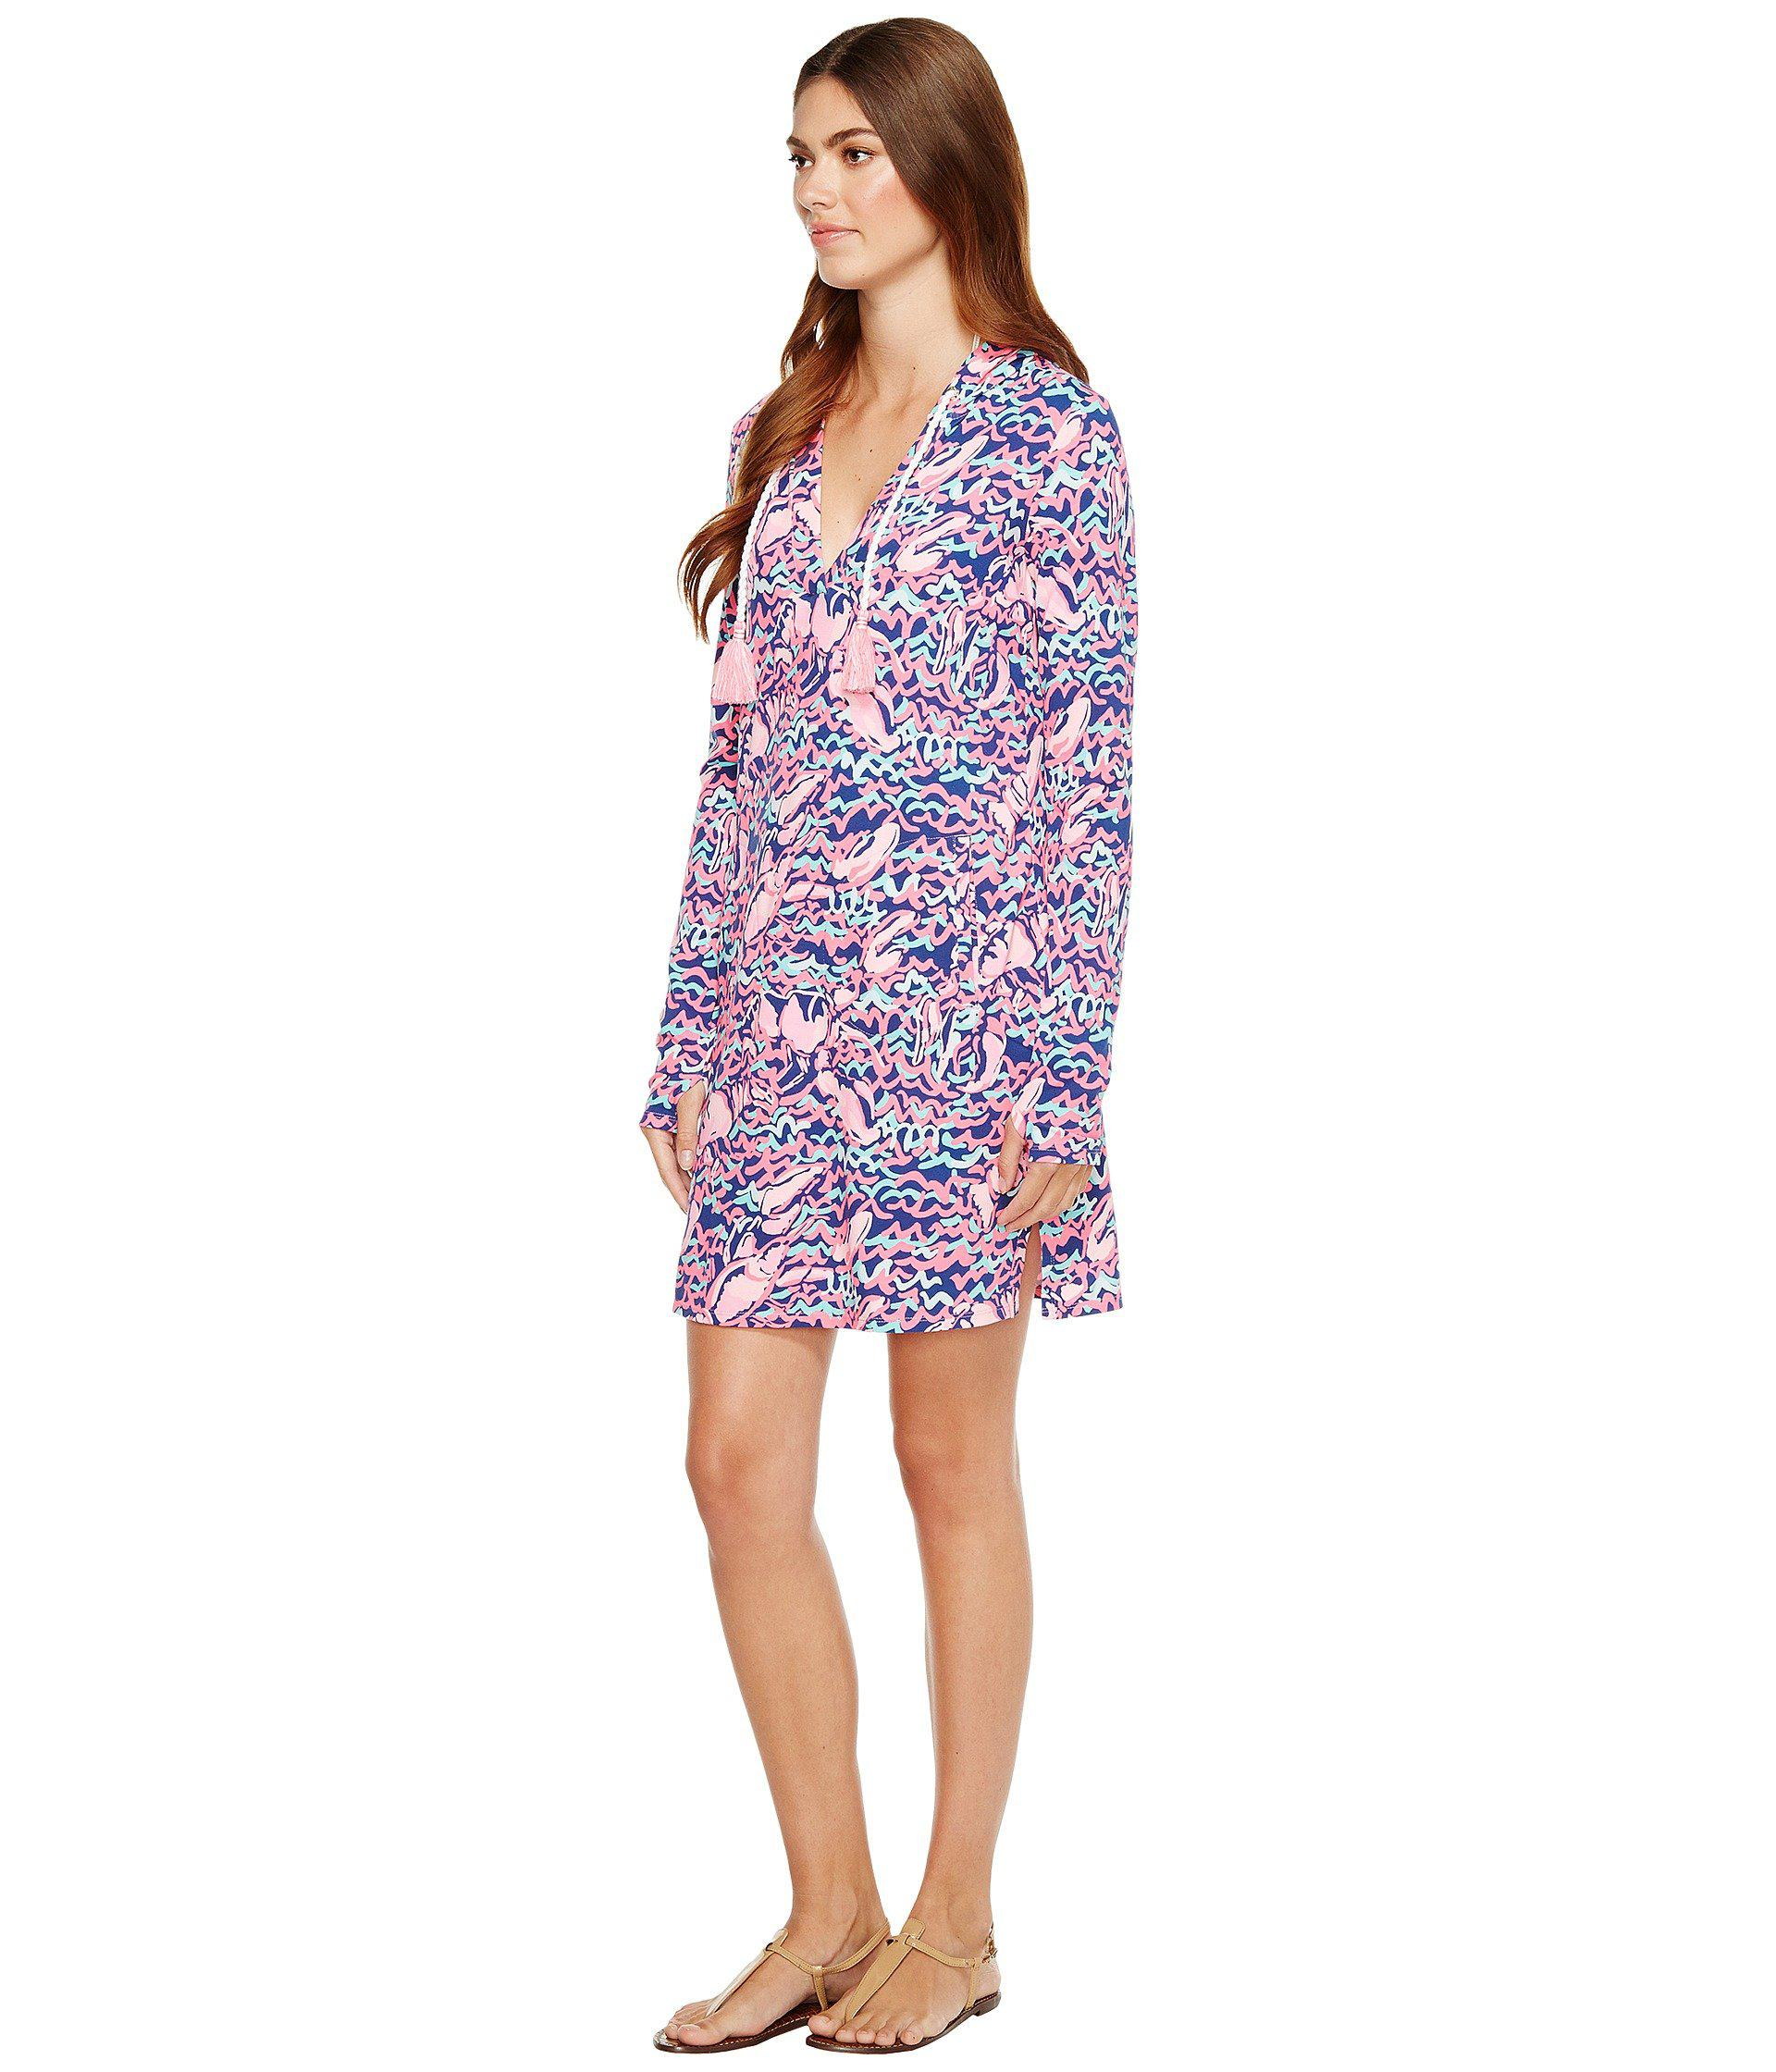 aa3a1e2e63 Lilly Pulitzer Upf 50+ Rylie Cover-up Dress - Lyst